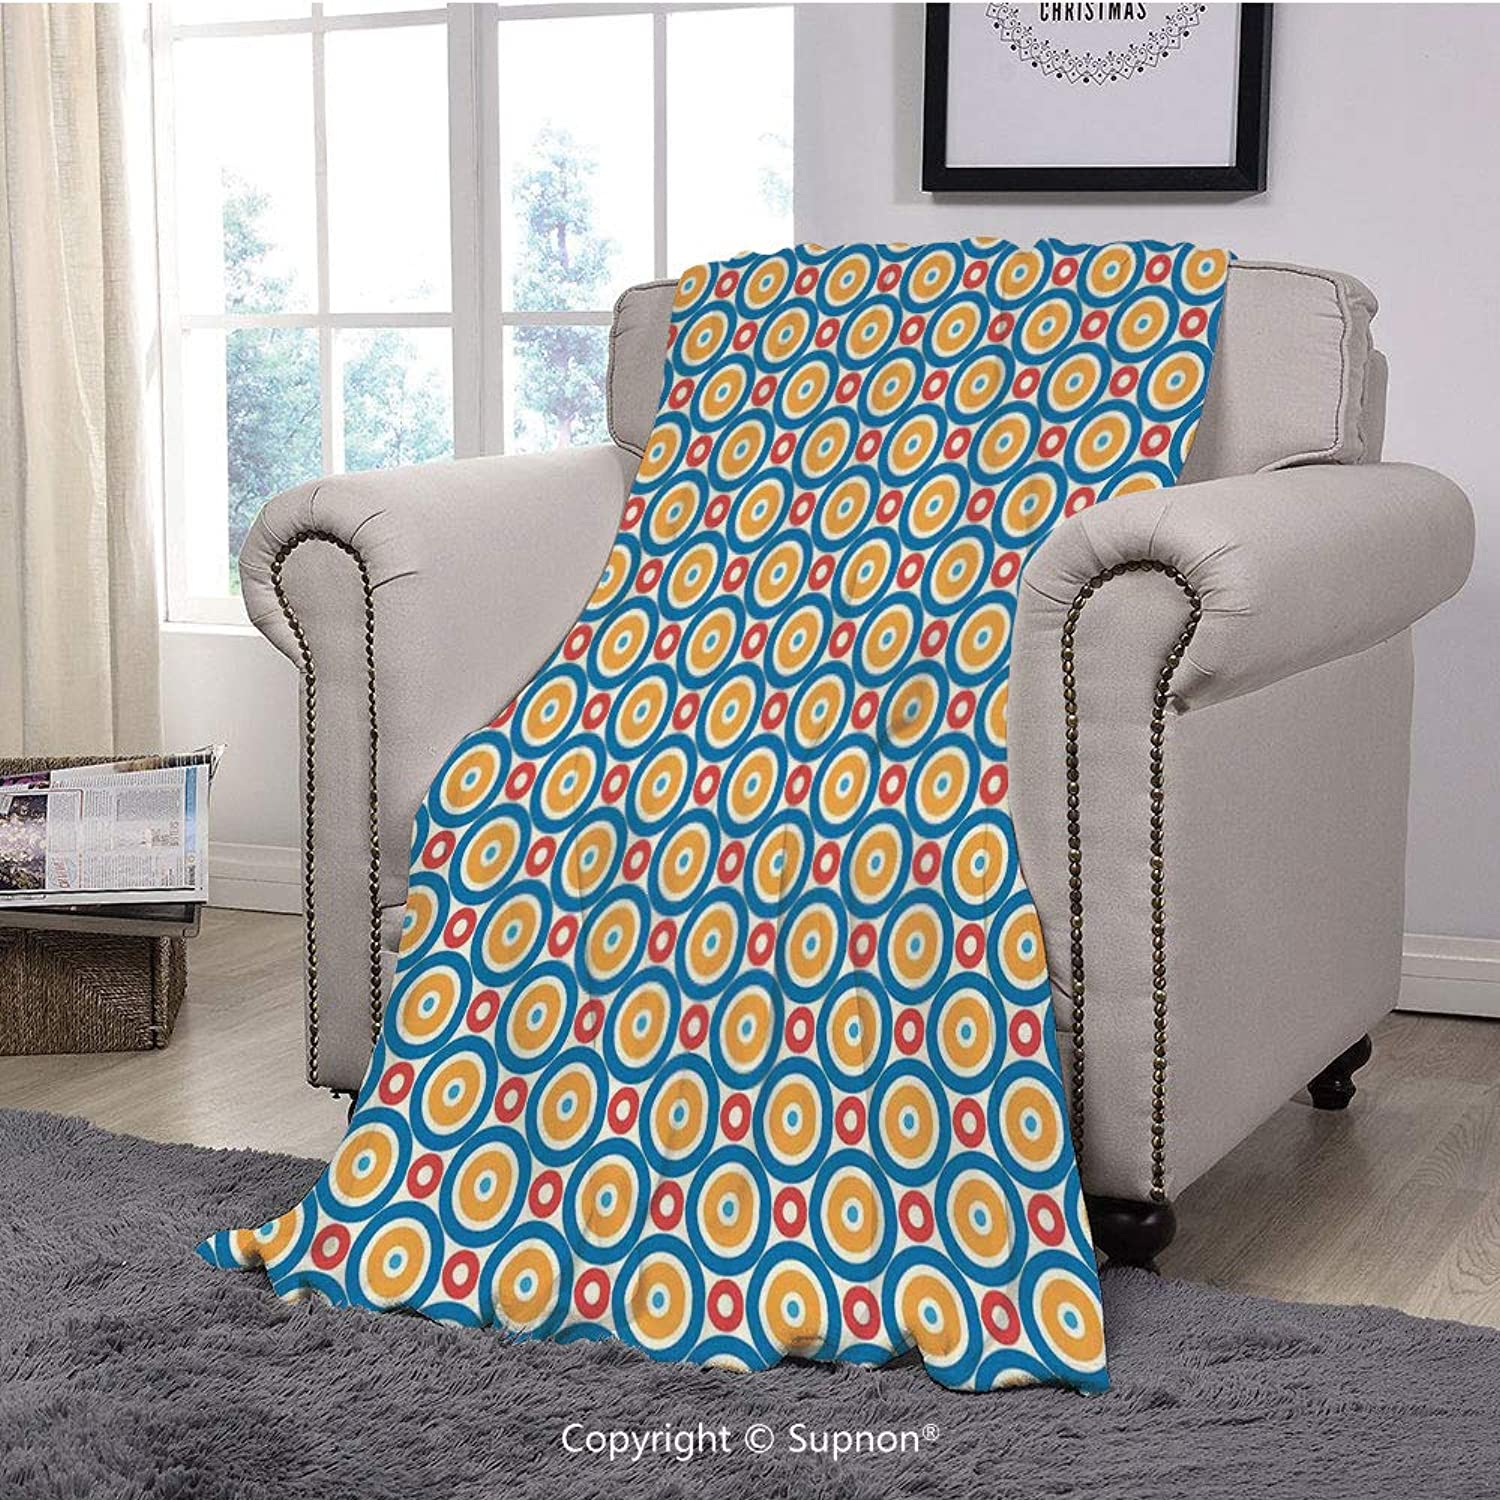 BeeMeng Throw Blanket Super Soft Fuzzy Light Blanket,Kids,Big and Small Circles with Dots Vibrant colord Symmetrical Tile Pattern,bluee Marigold Scarlet(51  x 51 )